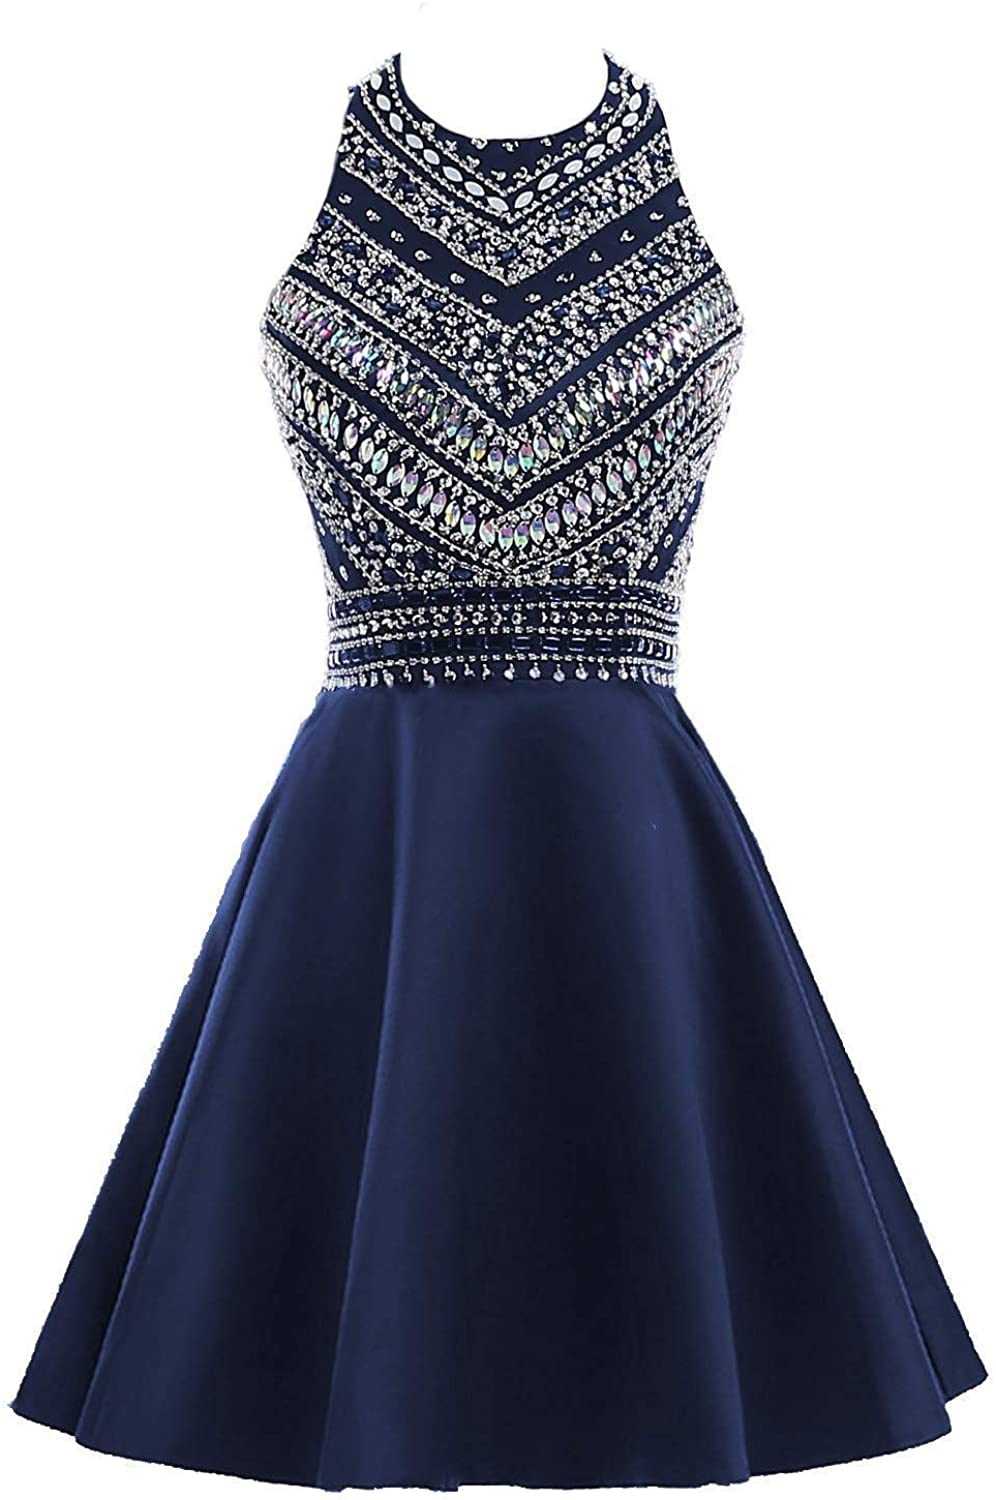 YSMei Women's 2 Piece Beaded Short Dress Pocket Prom Challenge the lowest Year-end gift price Homecoming